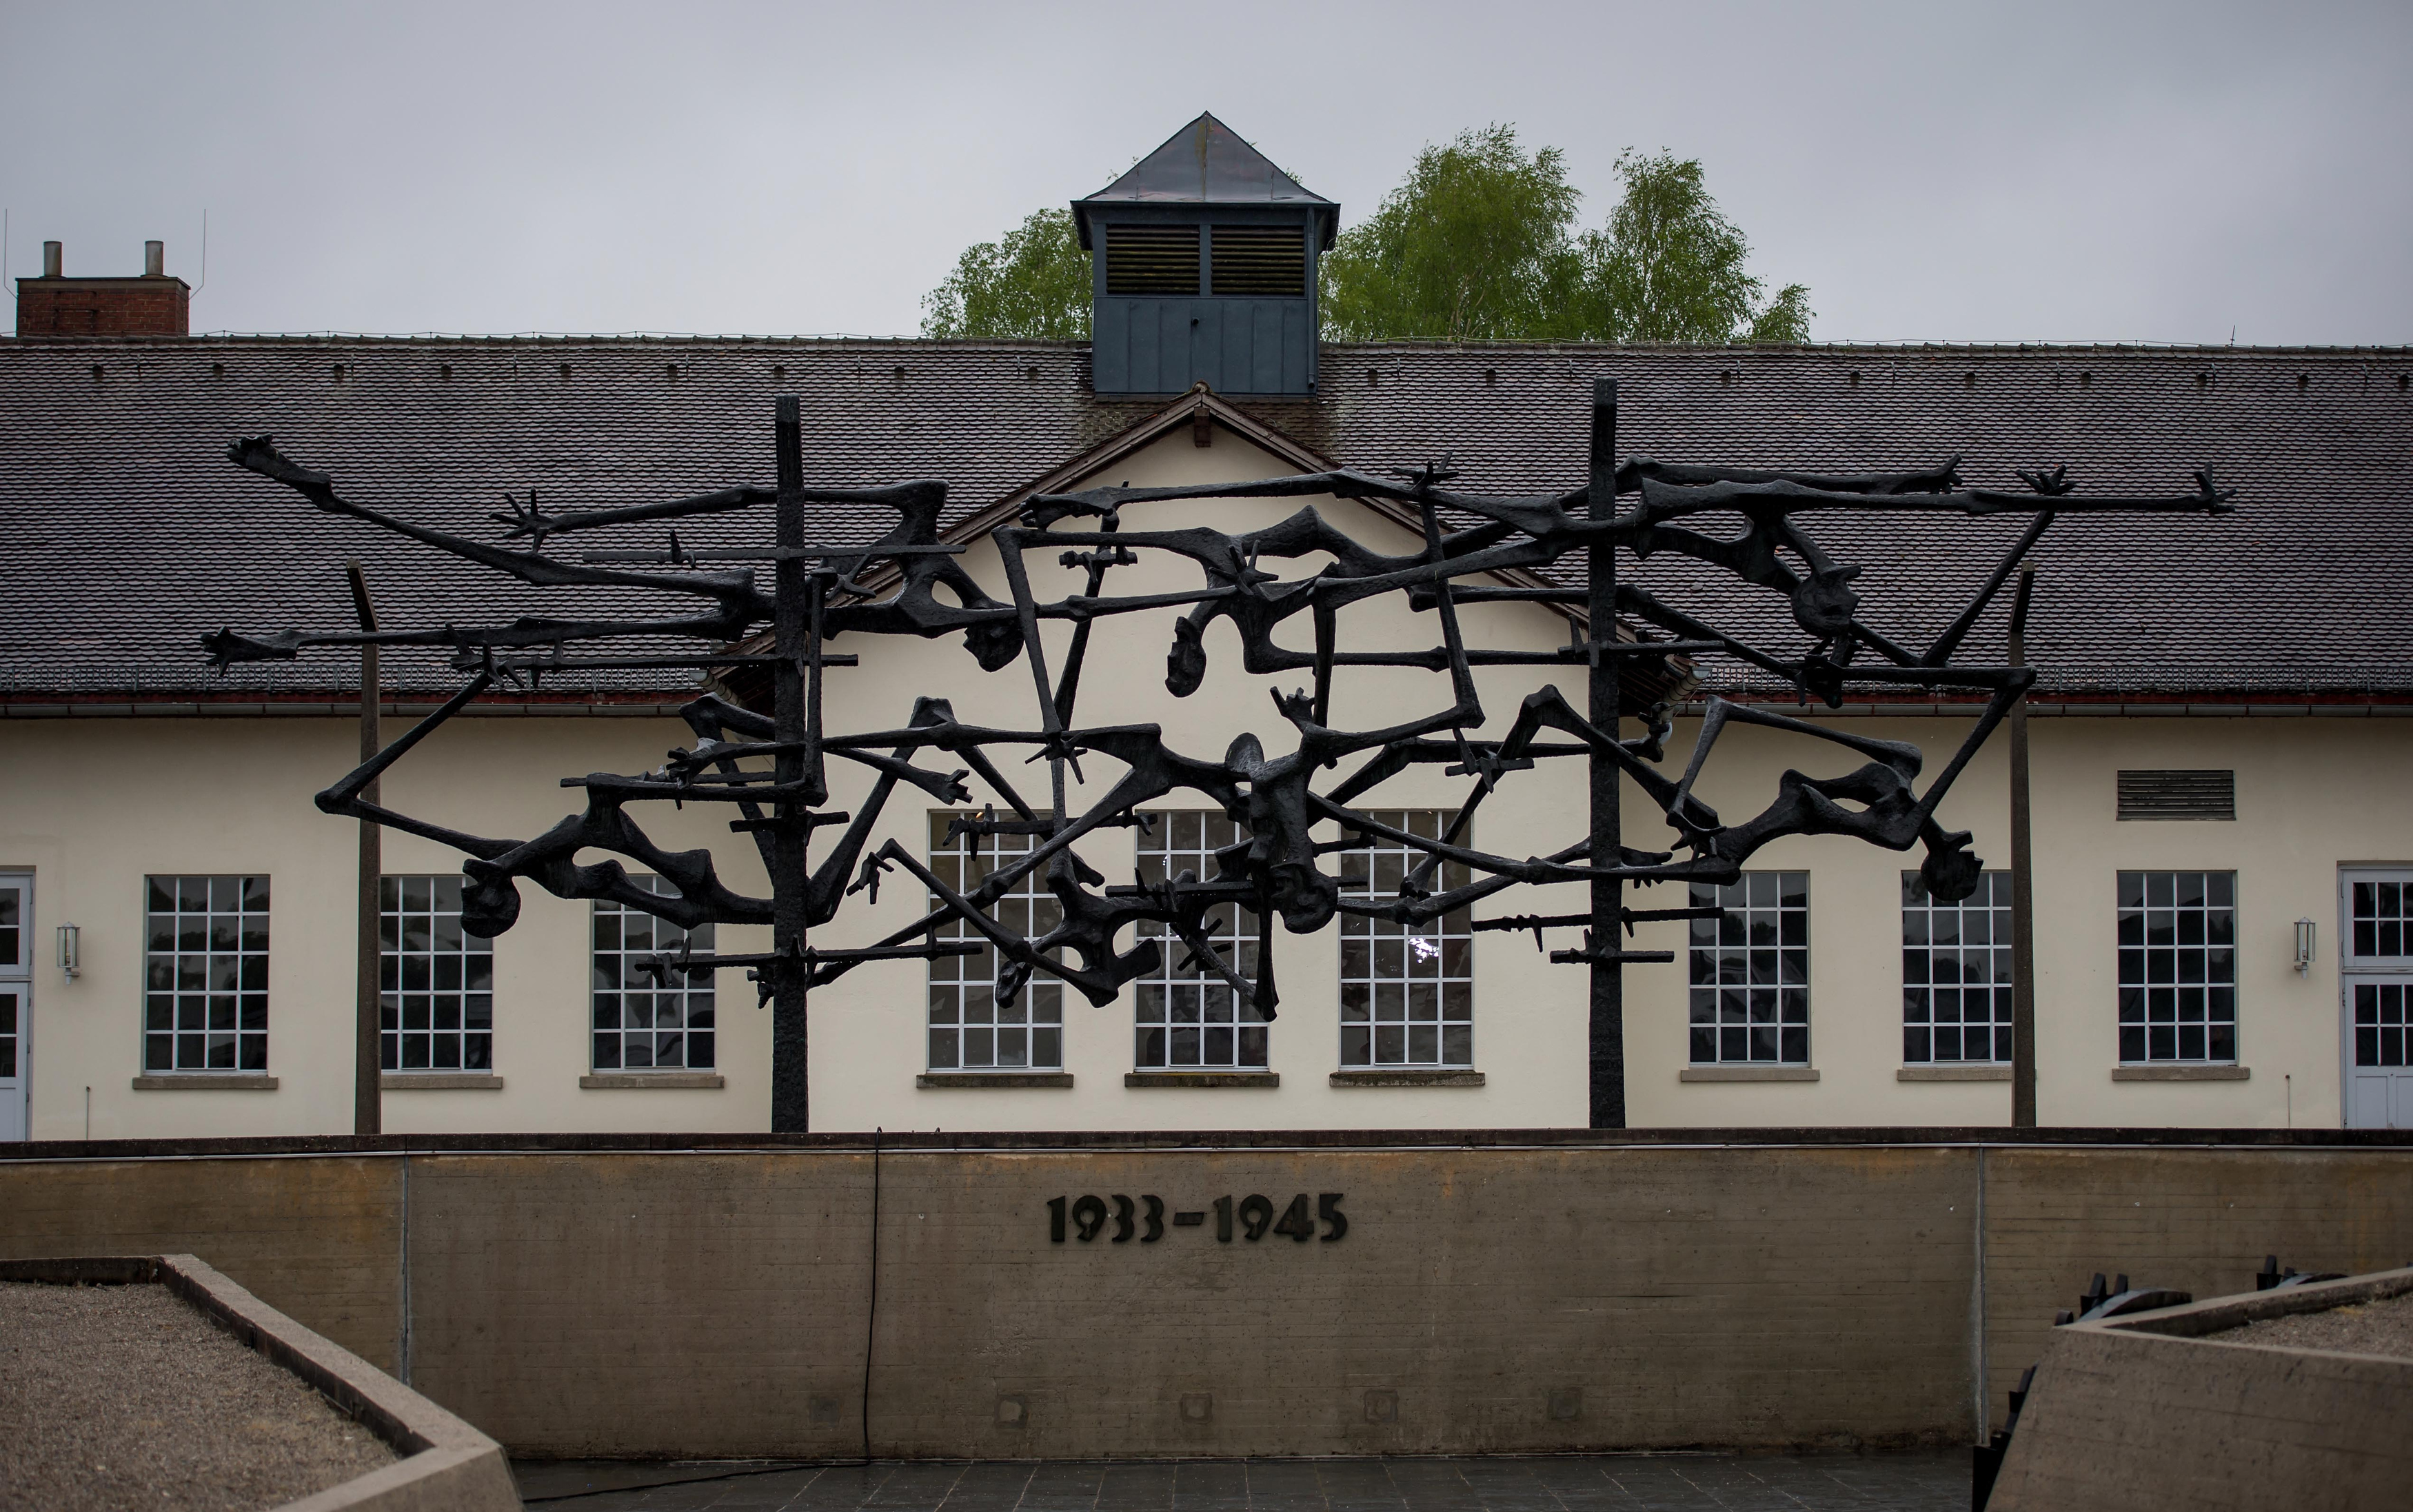 The central memorial of the former Dachau concentration camp site, seen on May 1, 2015 in Dachau, Germany.